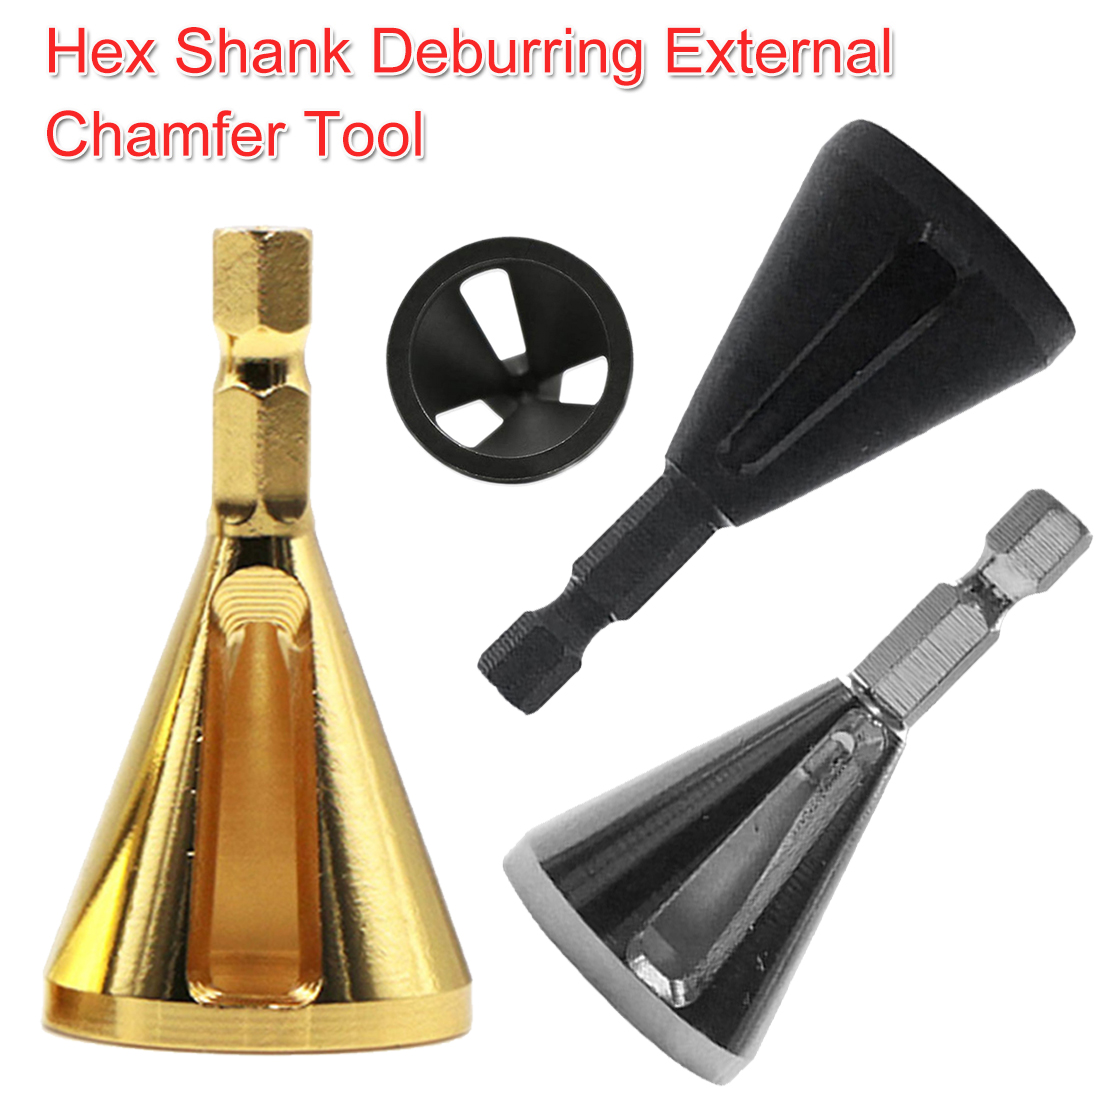 Steel Deburring External Chamfer Tool Drills Bits Remove Burr Tool Repair Damaged Bolts 1/4 Shank For Metal /Stainless Steel